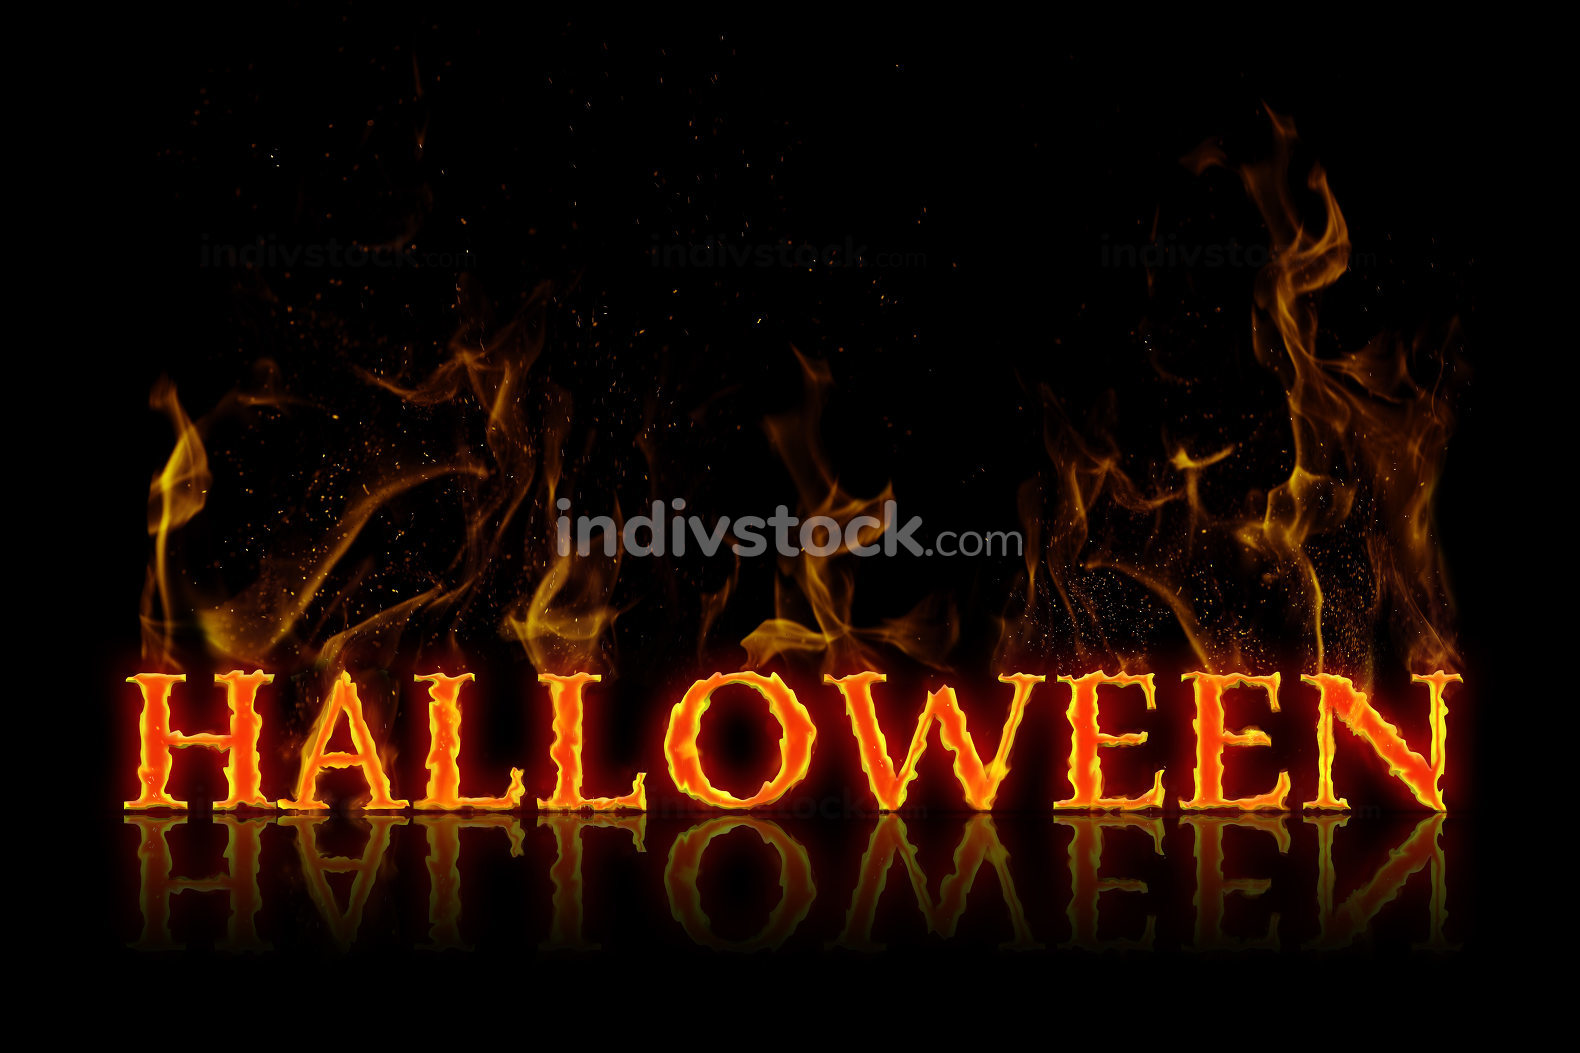 Halloween lettering in english language burning on fire